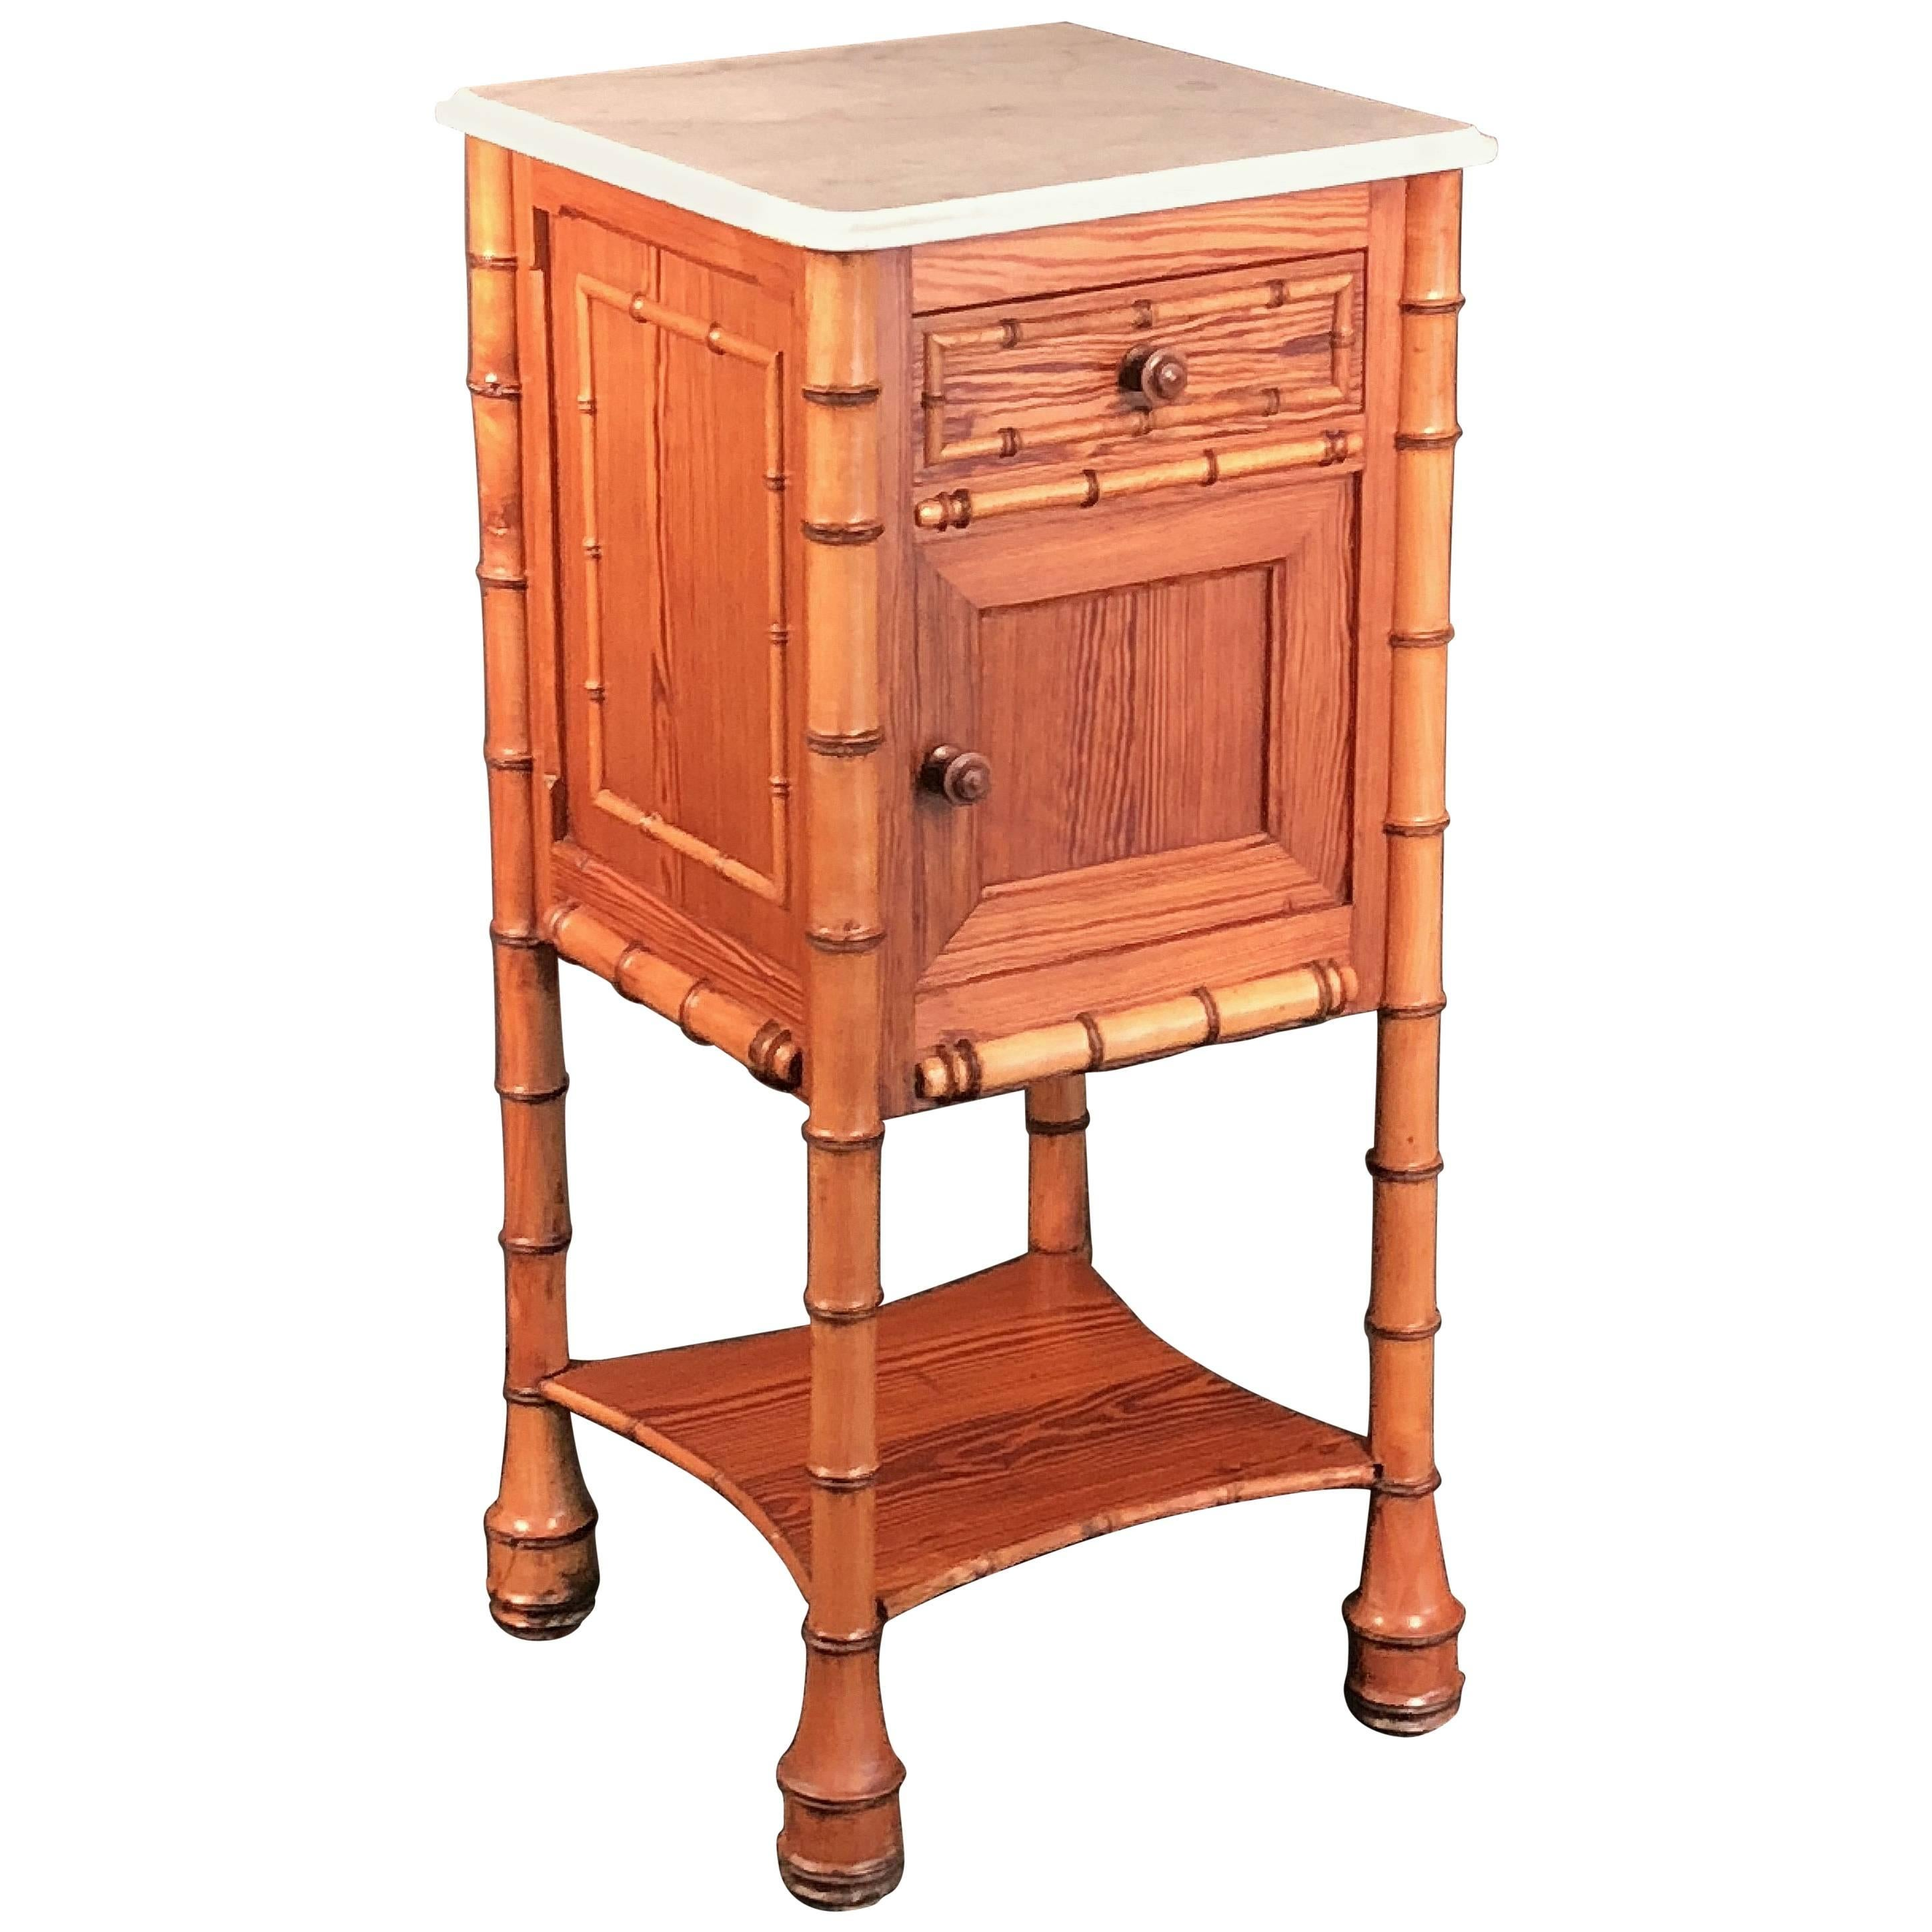 Faux Bamboo Nightstand or Bedside Table